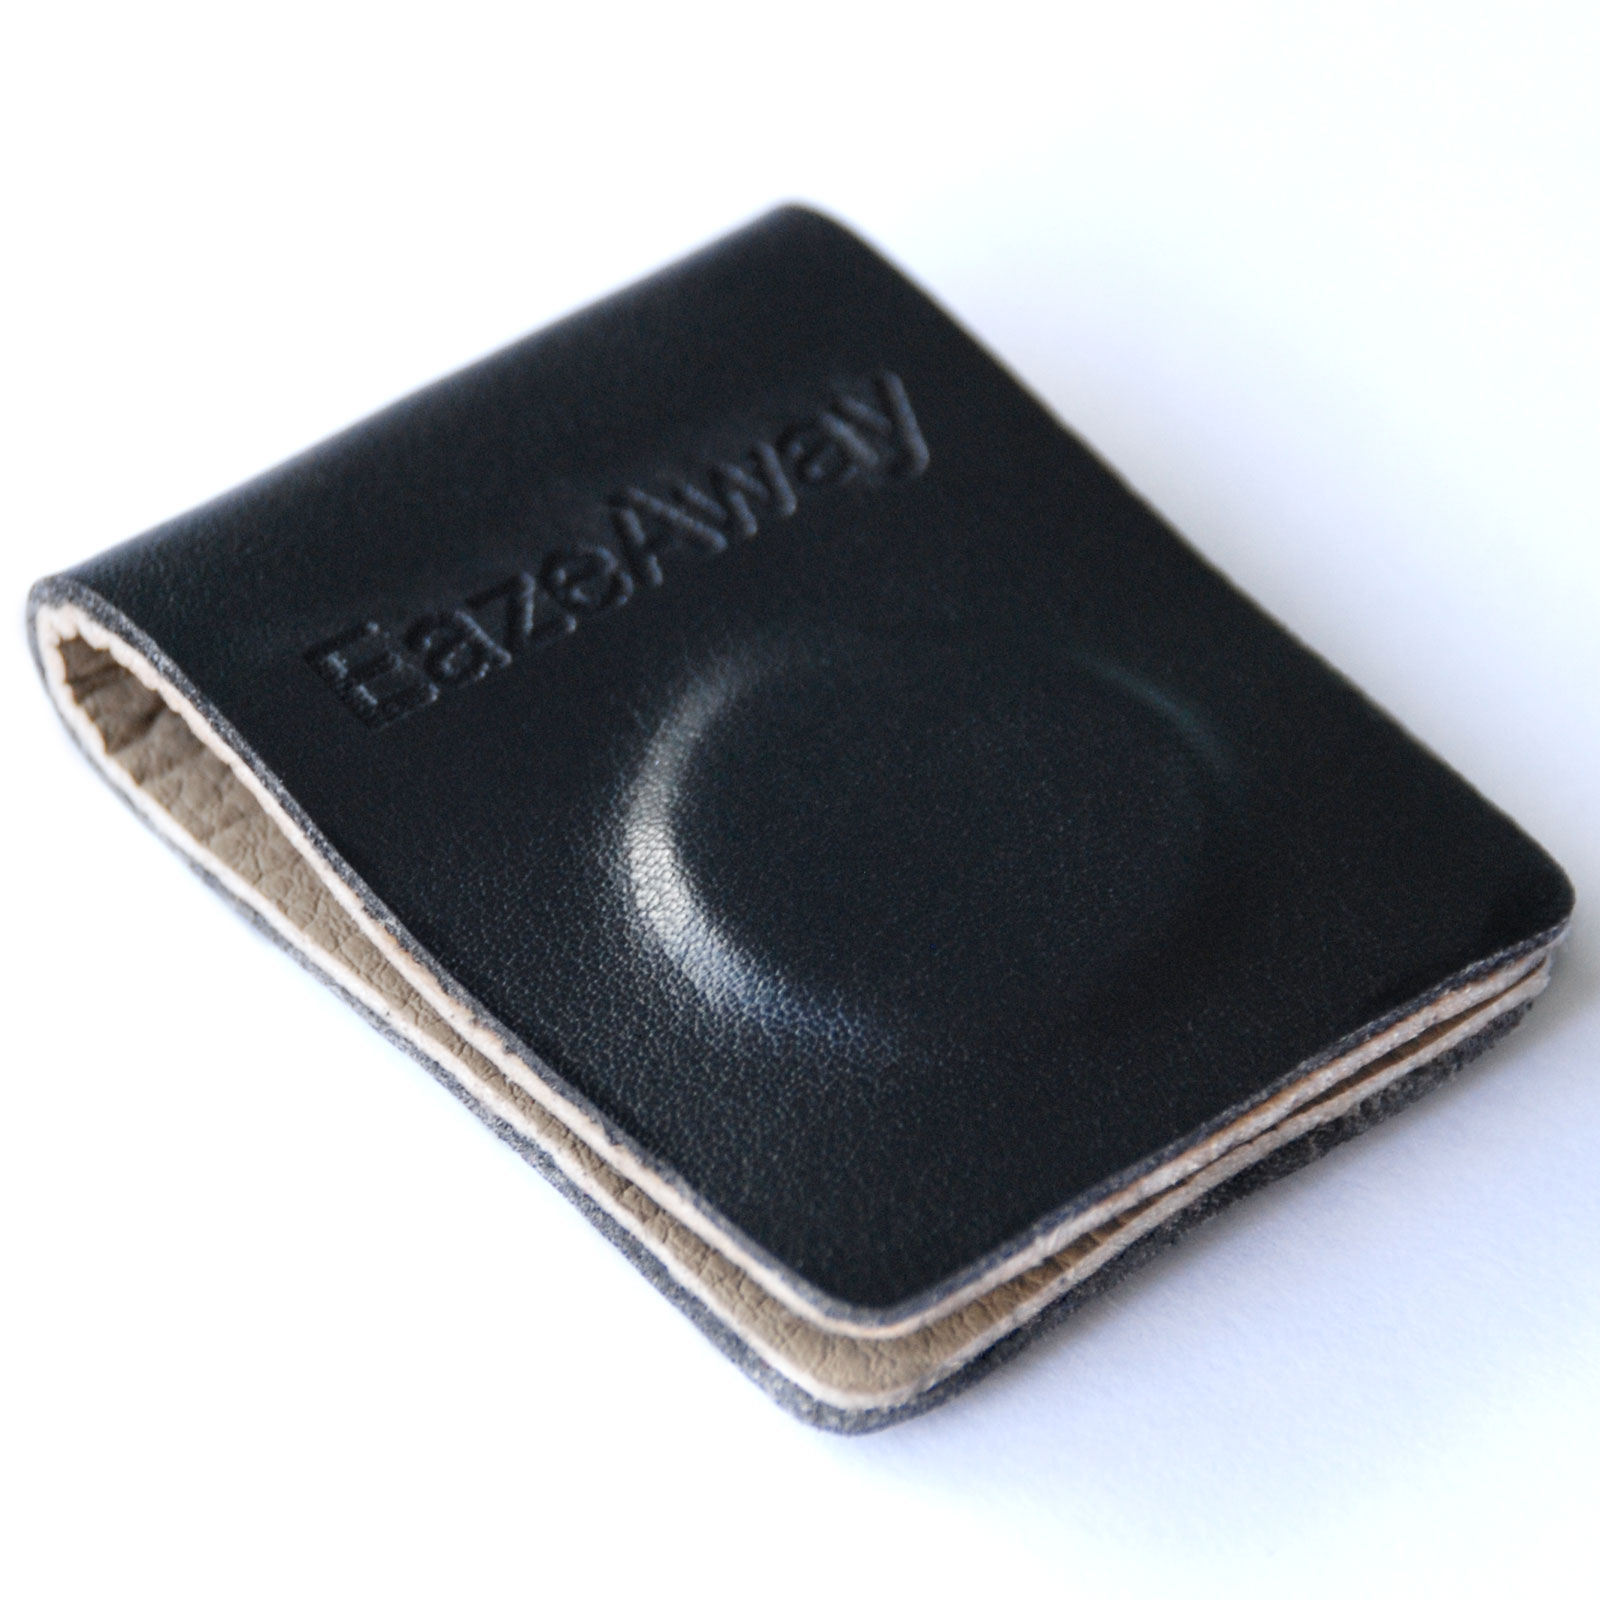 EazeAway Magnetic Clip made of soft leather with two strong neodymium magnets.